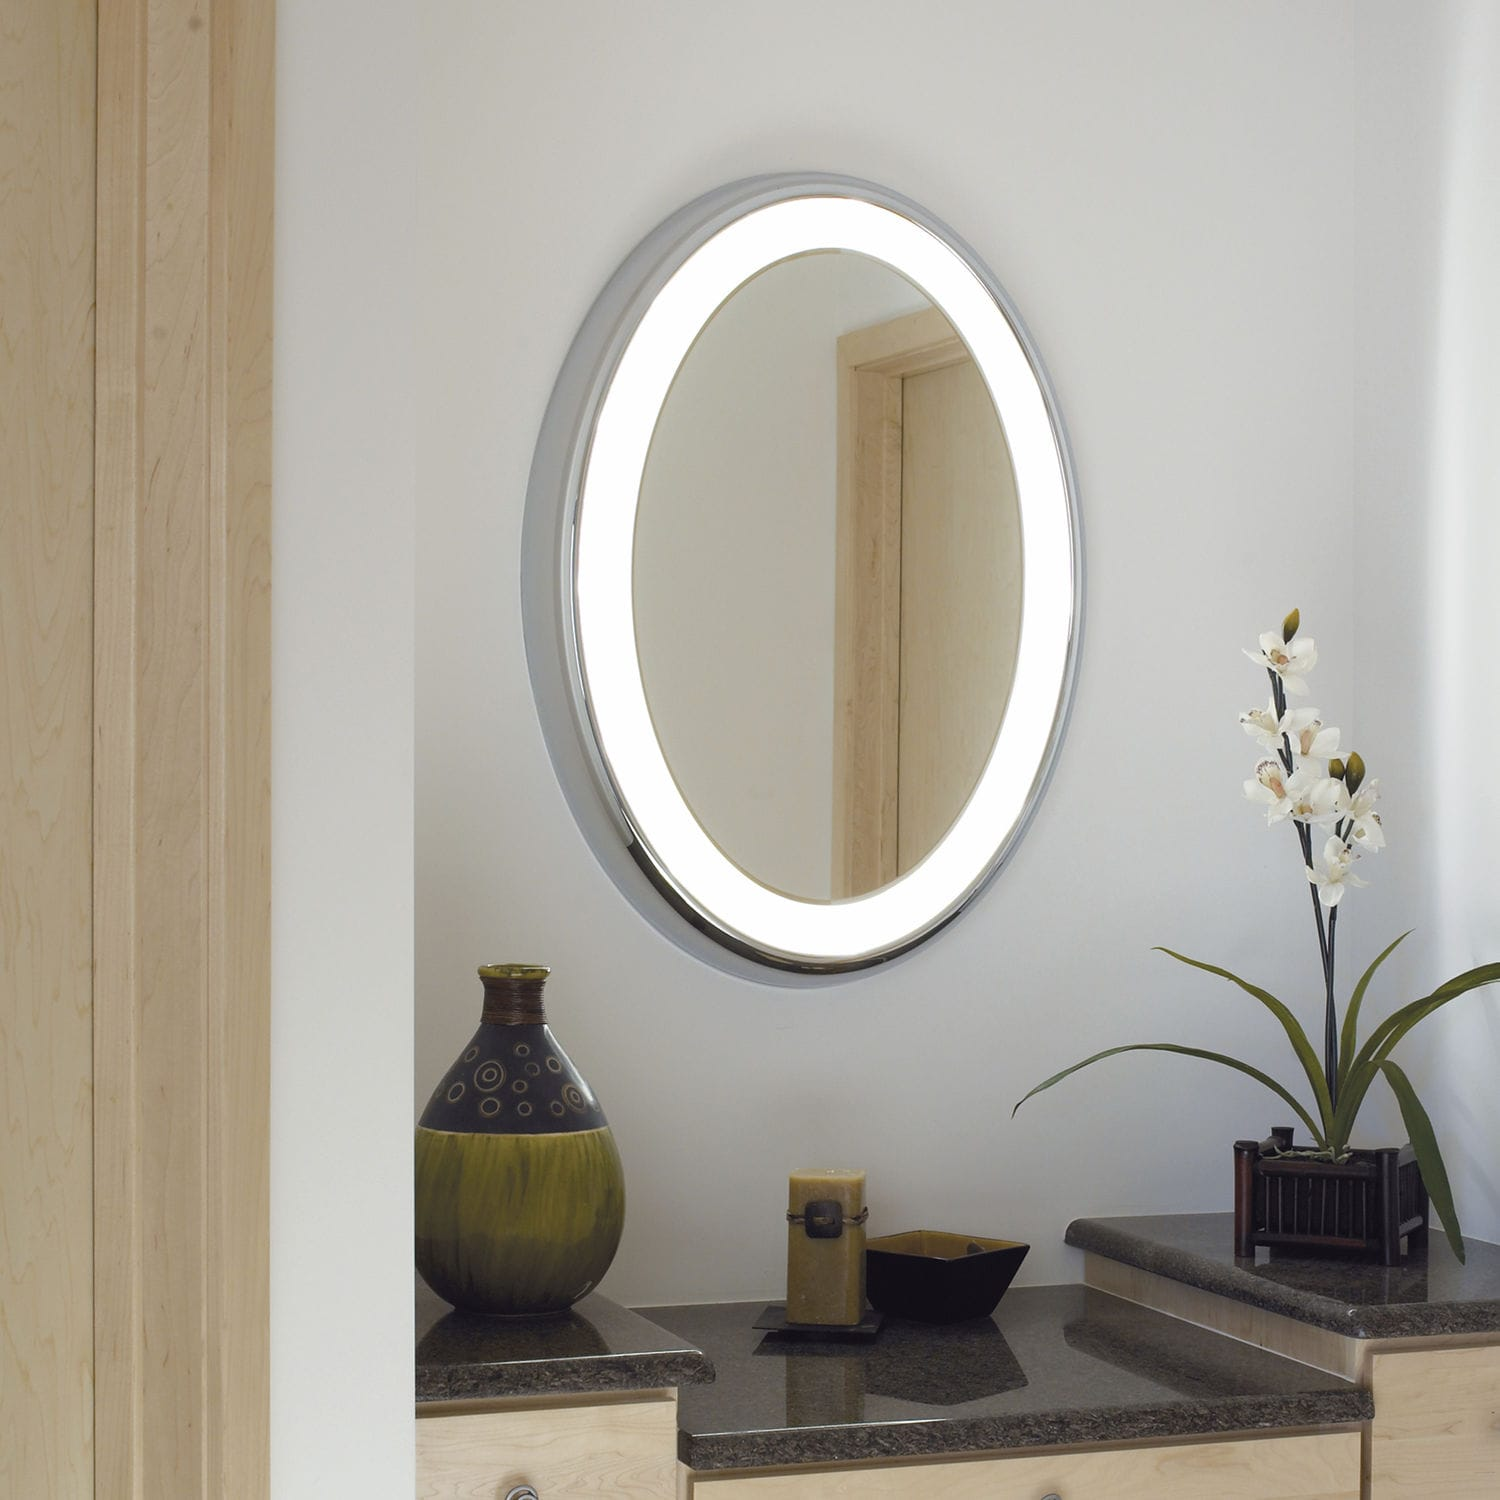 Wall Mounted Mirror Contemporary Oval Illuminated TIGRIS MIRROR OVAL TECH LIGHTING